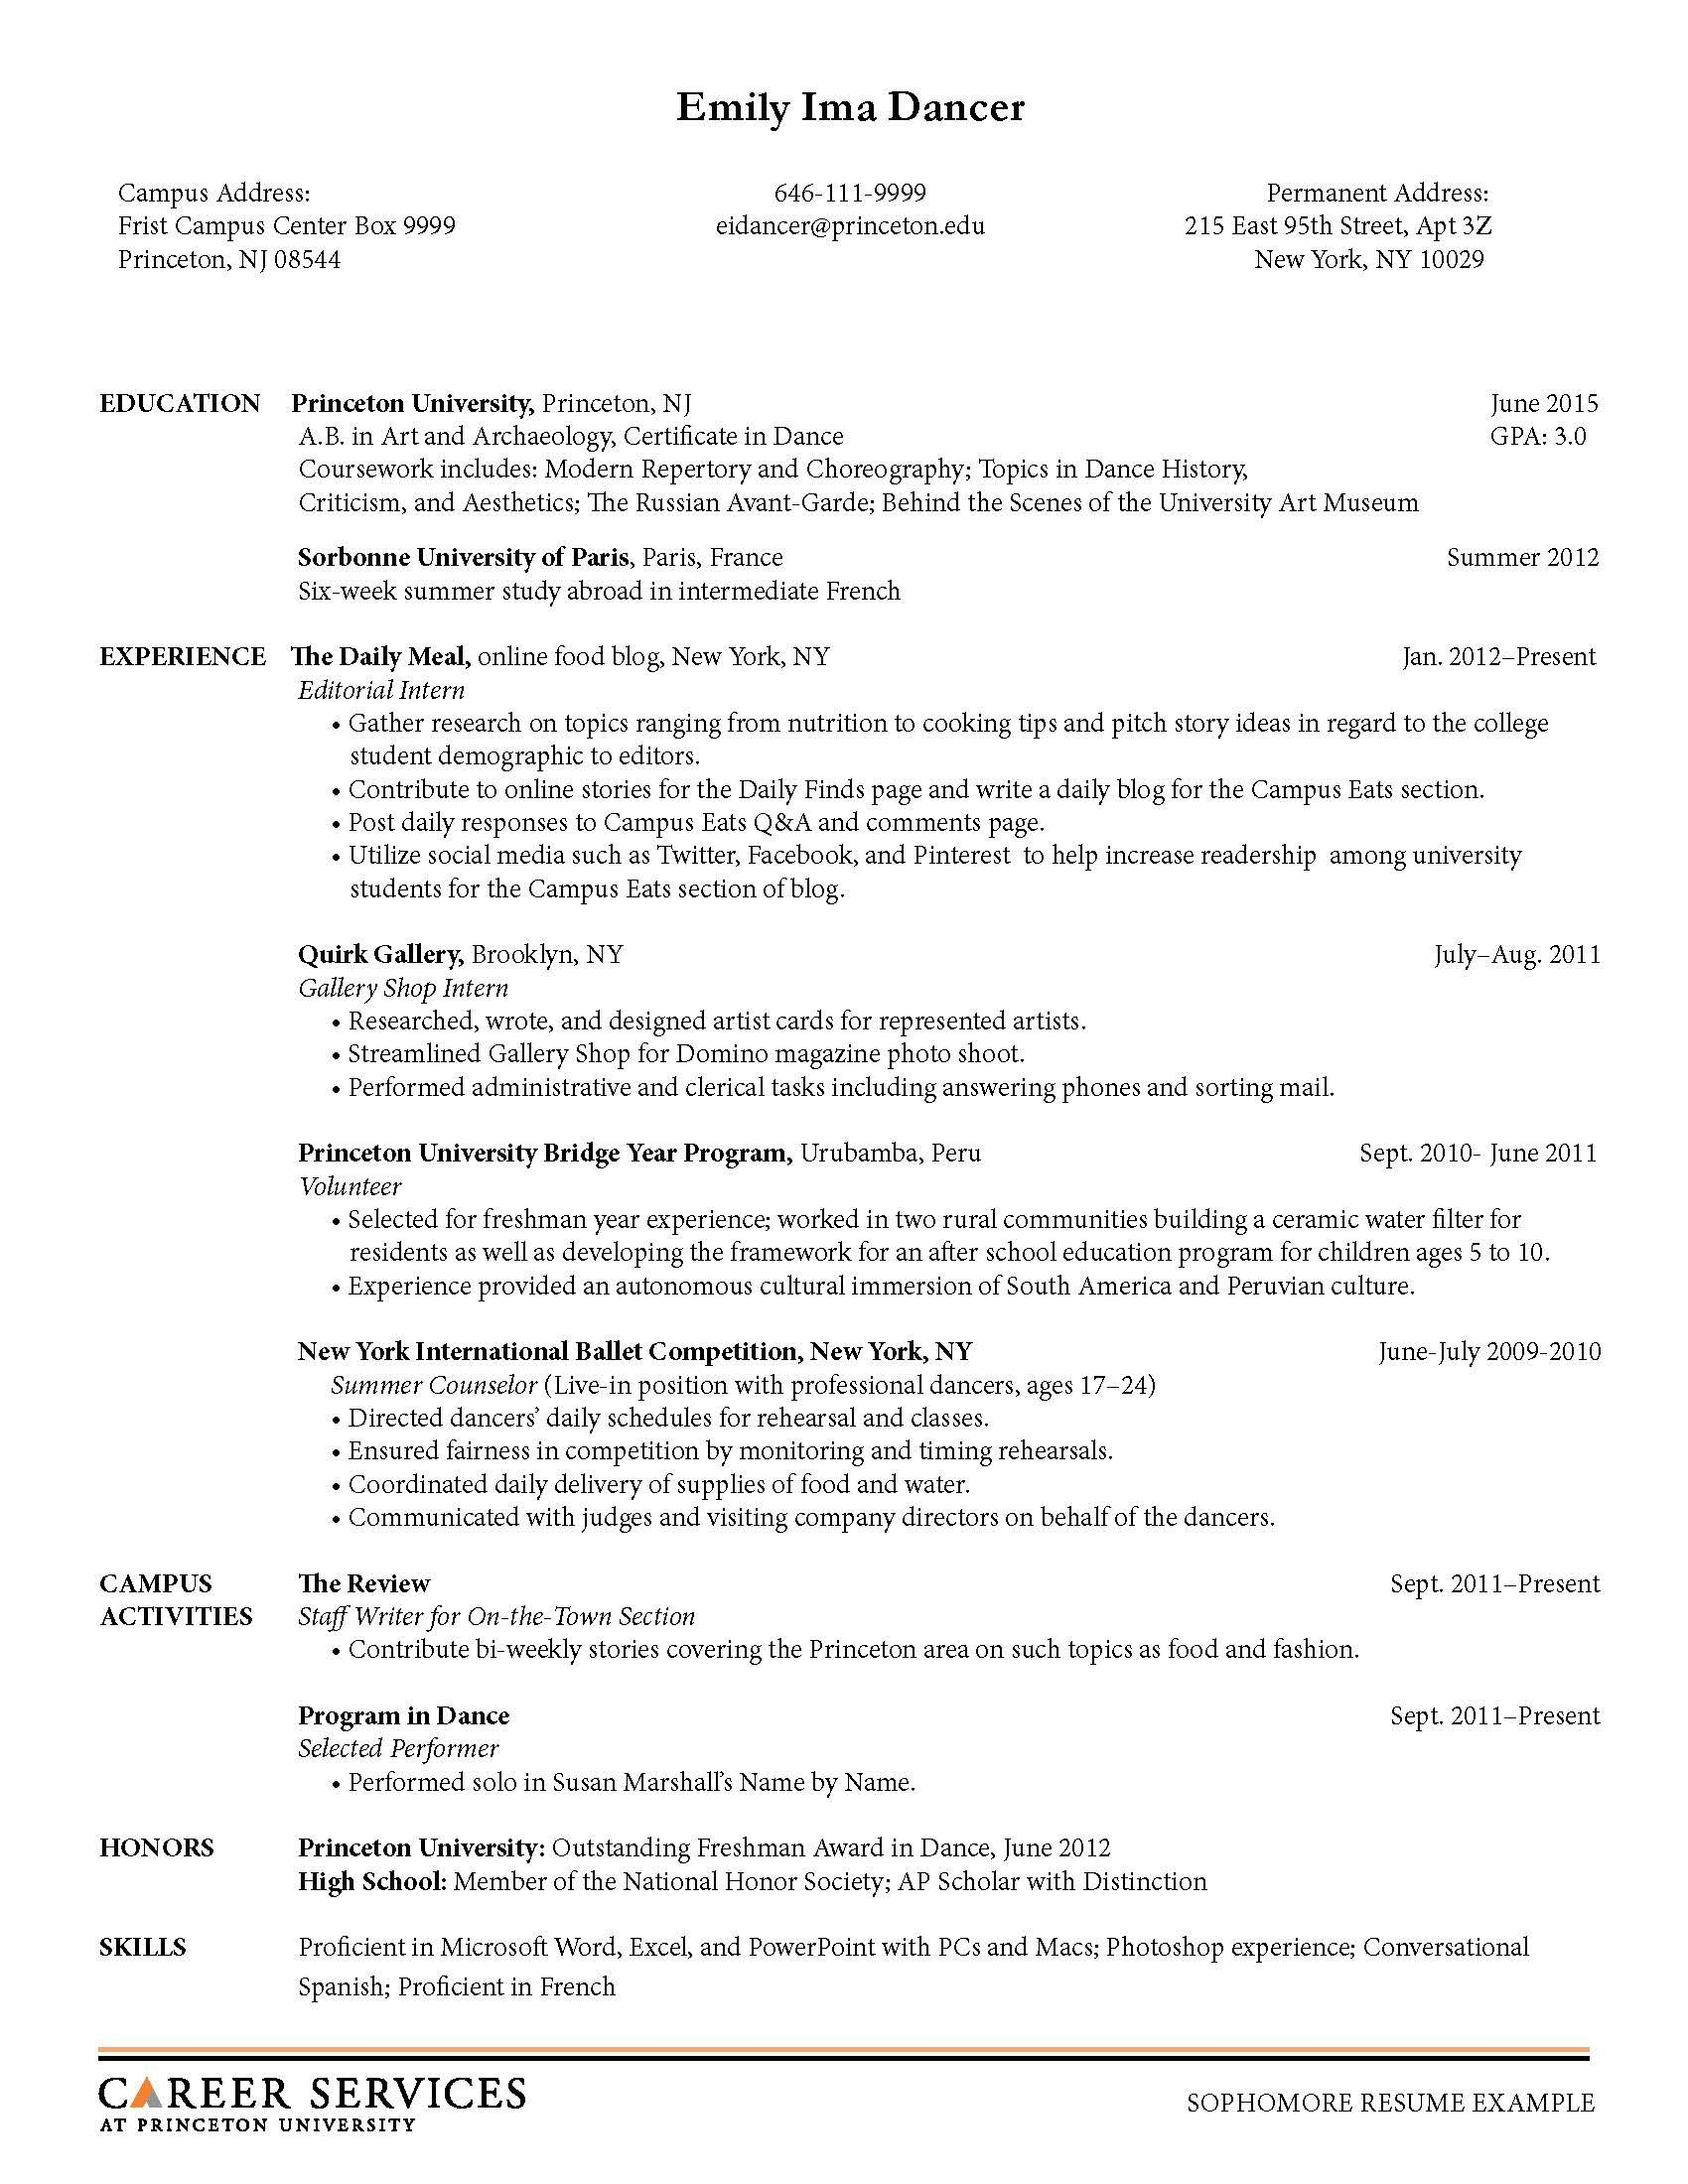 Opposenewapstandardsus  Scenic Sample Resume Resume And Career On Pinterest With Remarkable Resume Model Besides Verbs For Resume Furthermore Cool Resume With Adorable Director Of Operations Resume Also Help Writing A Resume In Addition Resume Communication Skills And Resume Book As Well As Examples Of A Cover Letter For A Resume Additionally Accounting Resume Template From Pinterestcom With Opposenewapstandardsus  Remarkable Sample Resume Resume And Career On Pinterest With Adorable Resume Model Besides Verbs For Resume Furthermore Cool Resume And Scenic Director Of Operations Resume Also Help Writing A Resume In Addition Resume Communication Skills From Pinterestcom